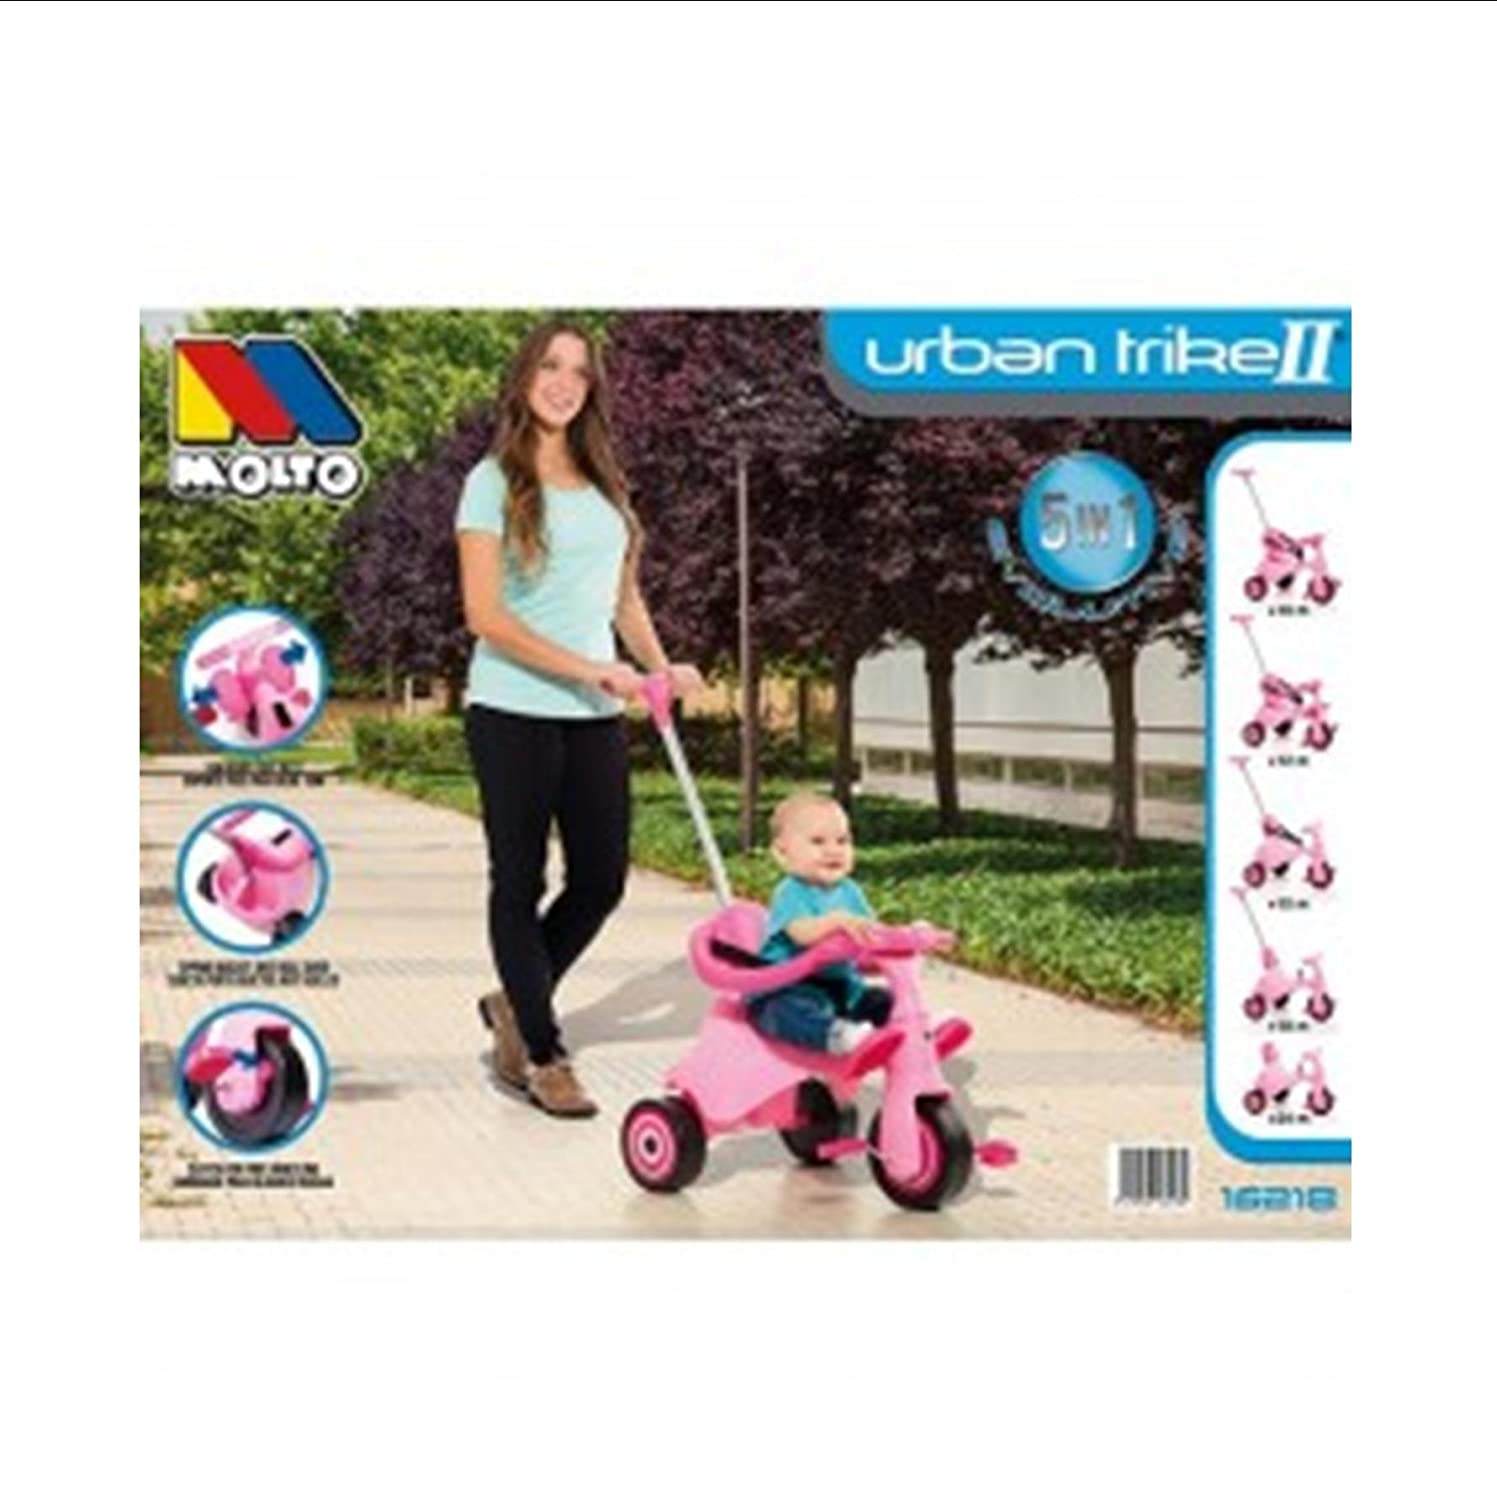 Triciclo infantil Molto Urban Trike II City Girl